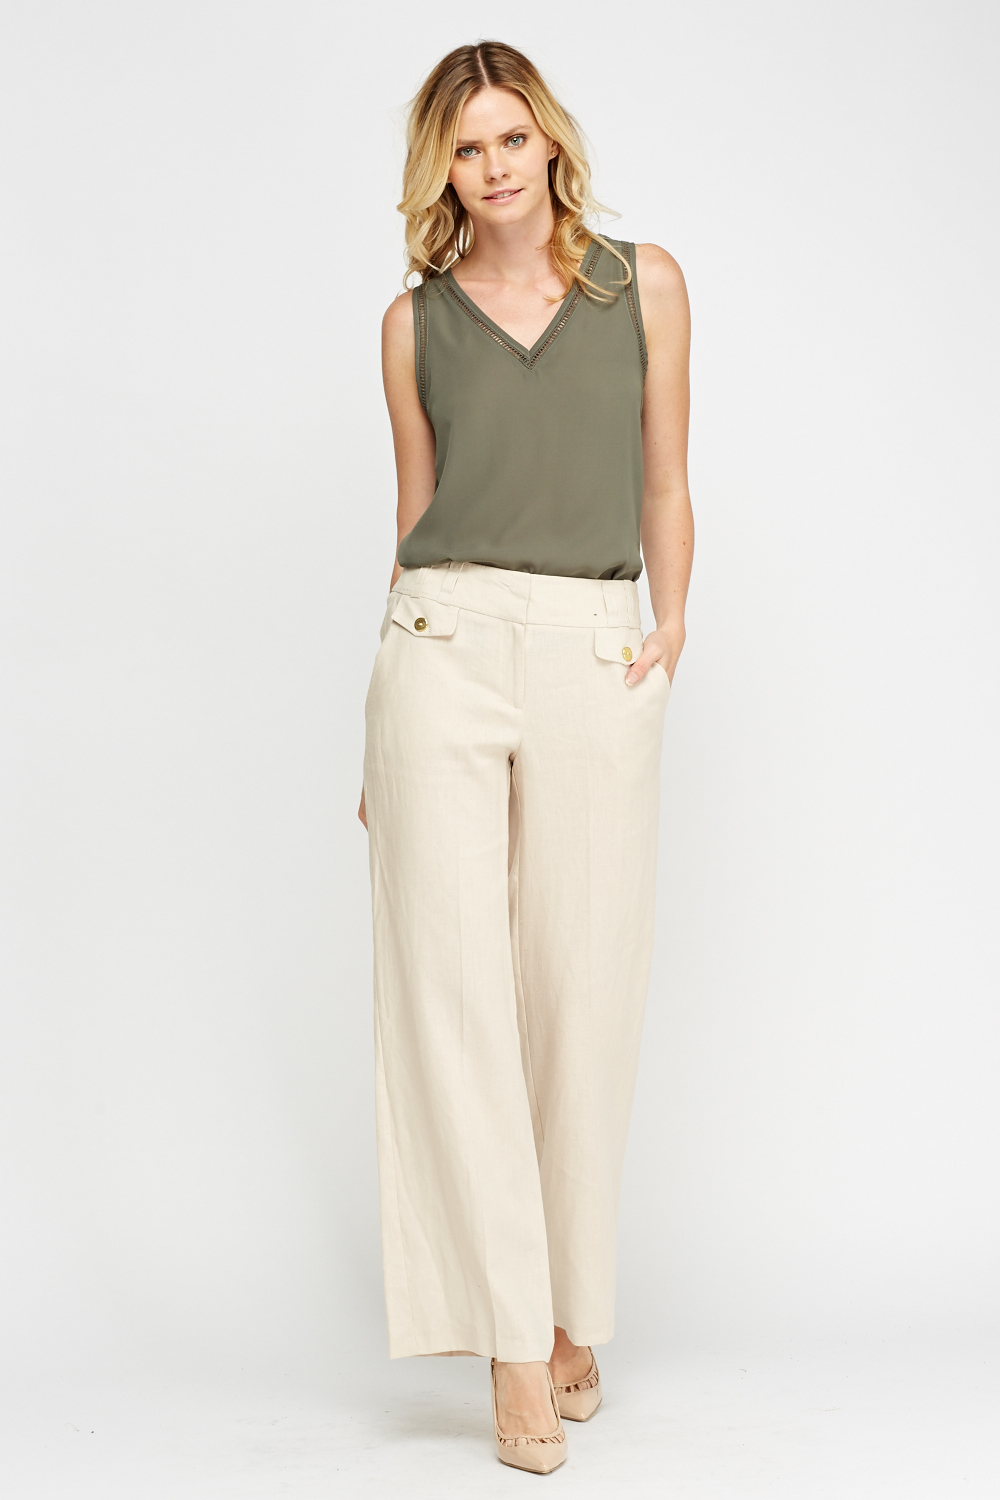 High-rise wide-leg stretch-cotton twill trousers Palmer//Harding's beige trousers are cool and chic in equal measure. This stretch-cotton twill pair sits comfortably high on the waist, and falls in contemporary wide legs to the floor.